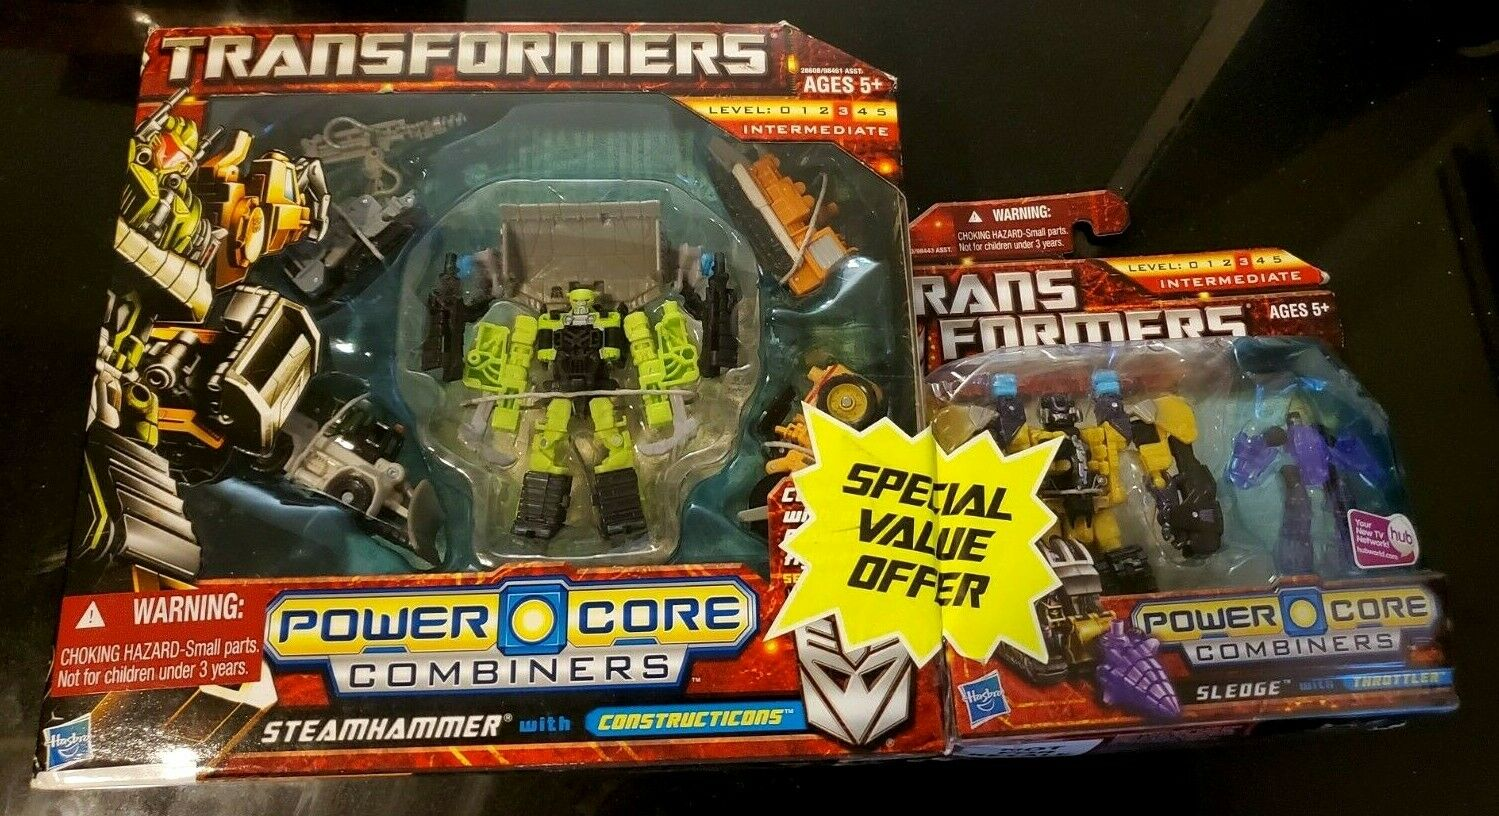 STEAMHAMMER & Sledge Transformers Power Core Combiners with BONUS Set UNOPENED